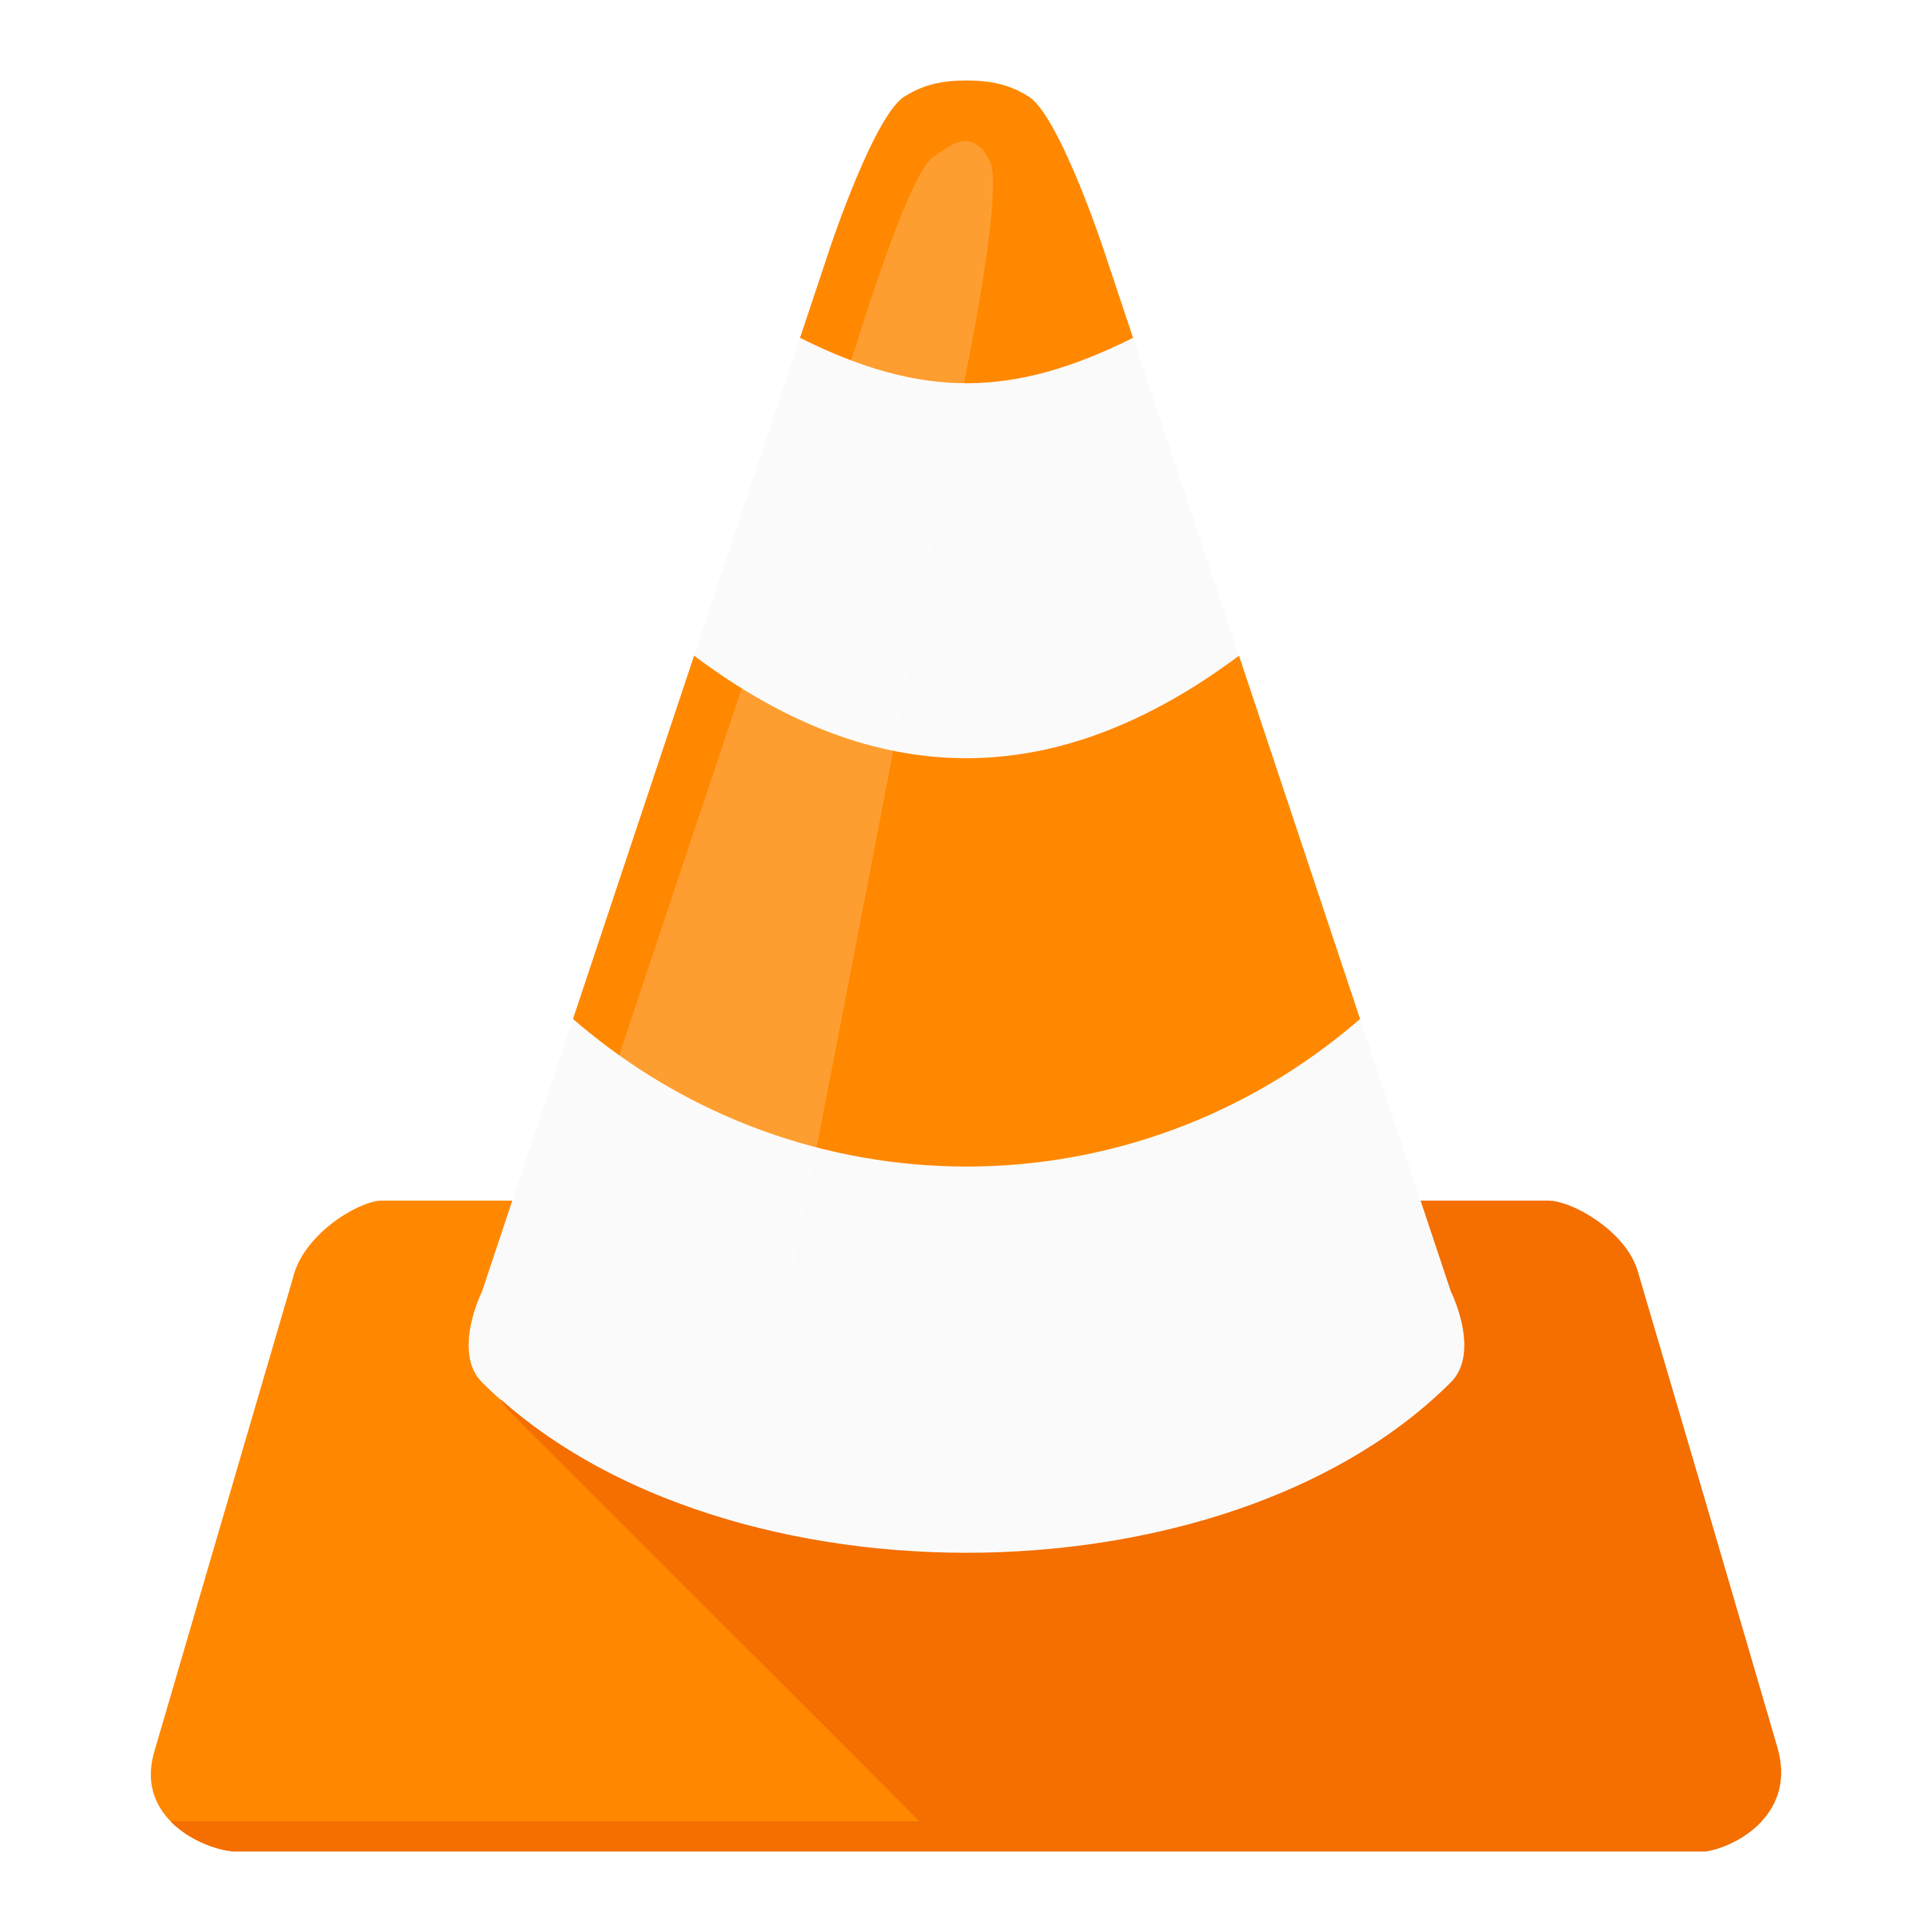 vlc-android/res/drawable-xhdpi/ic_tv_icon_big.png